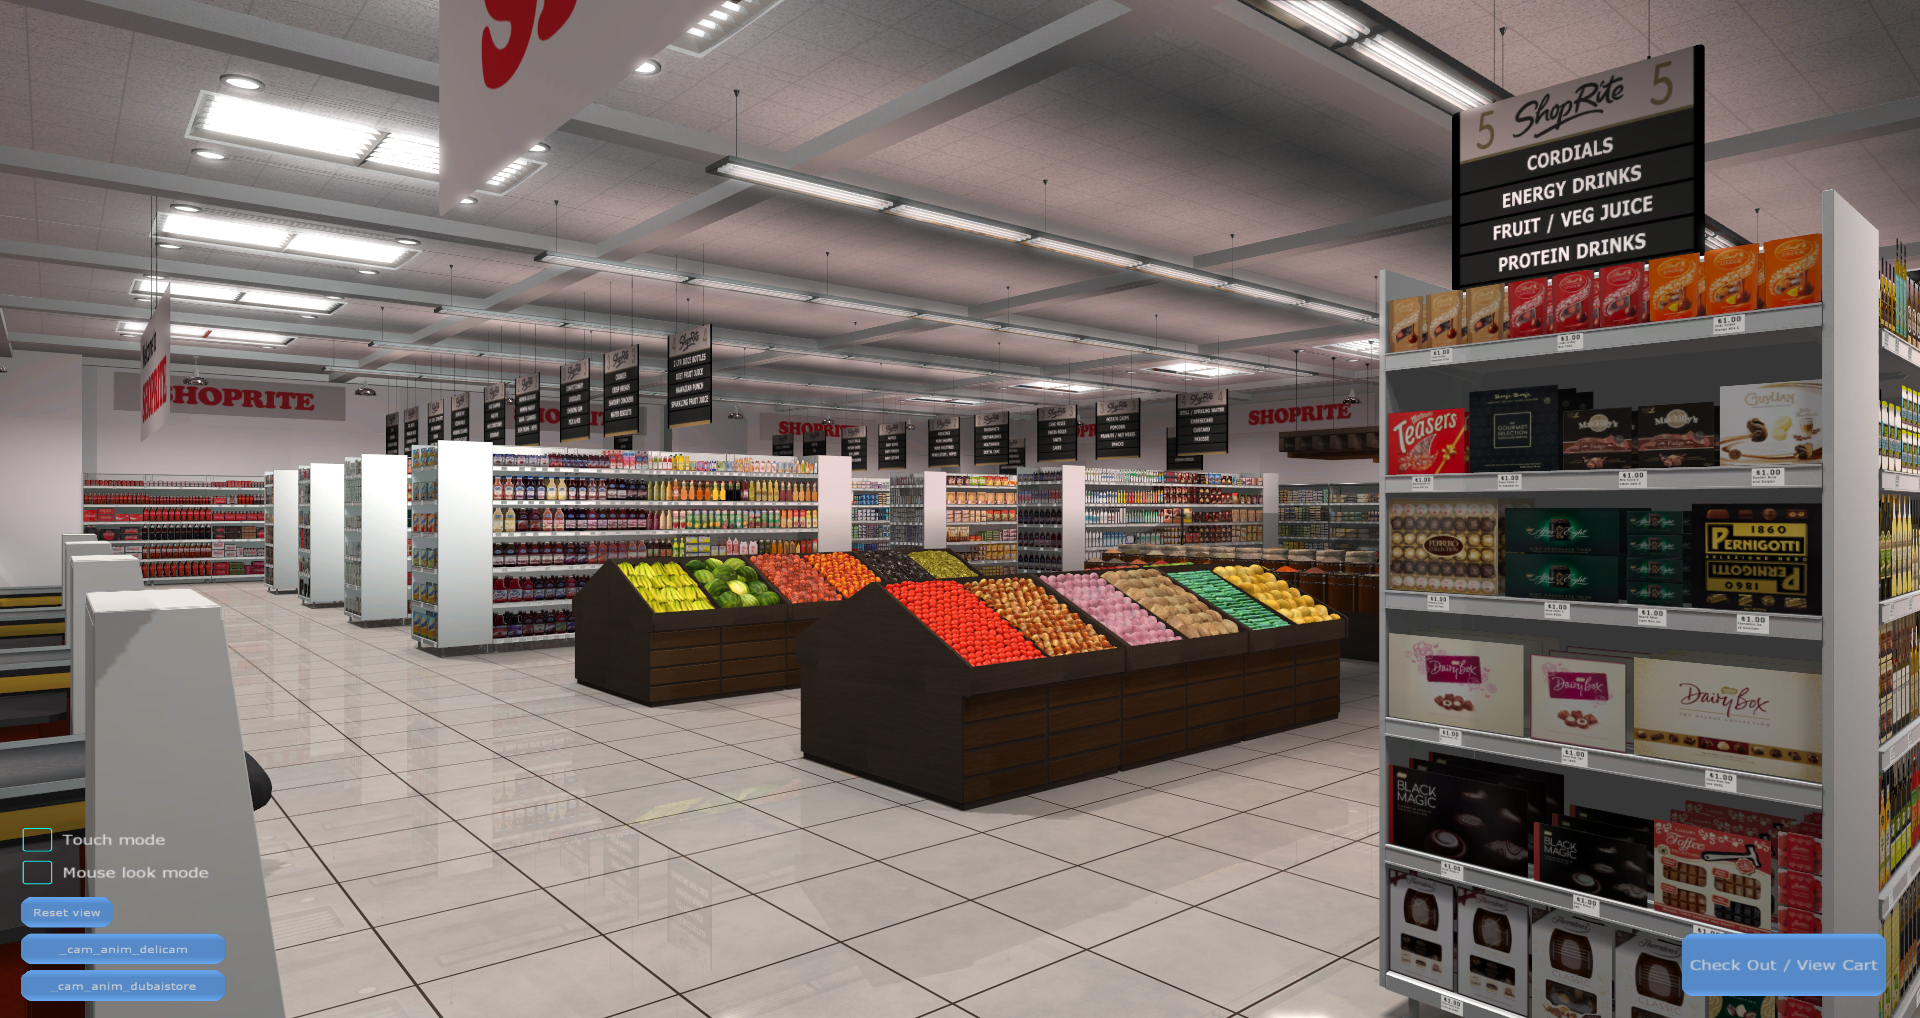 3D Shopping Virtual Store Screenshot from Carrefour VR Supermarket 2